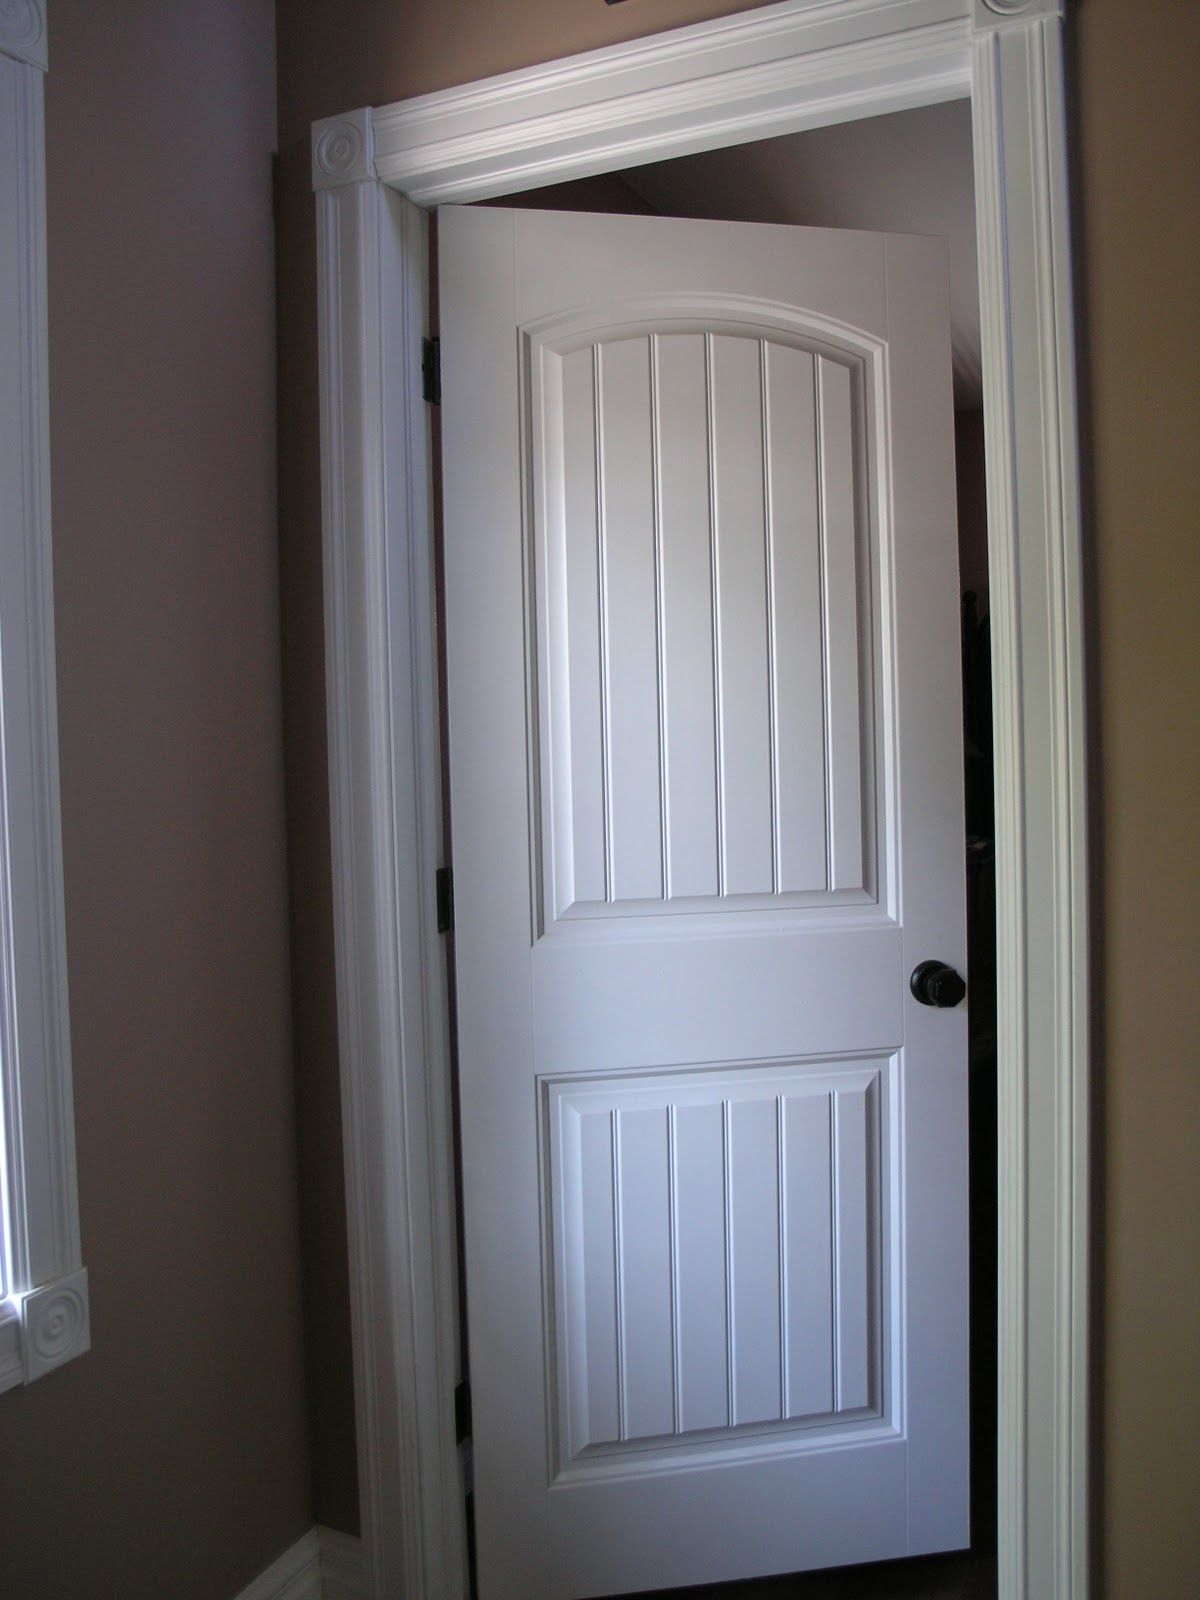 1000 images about molding door frames on pinterest how to paint how to hang and white